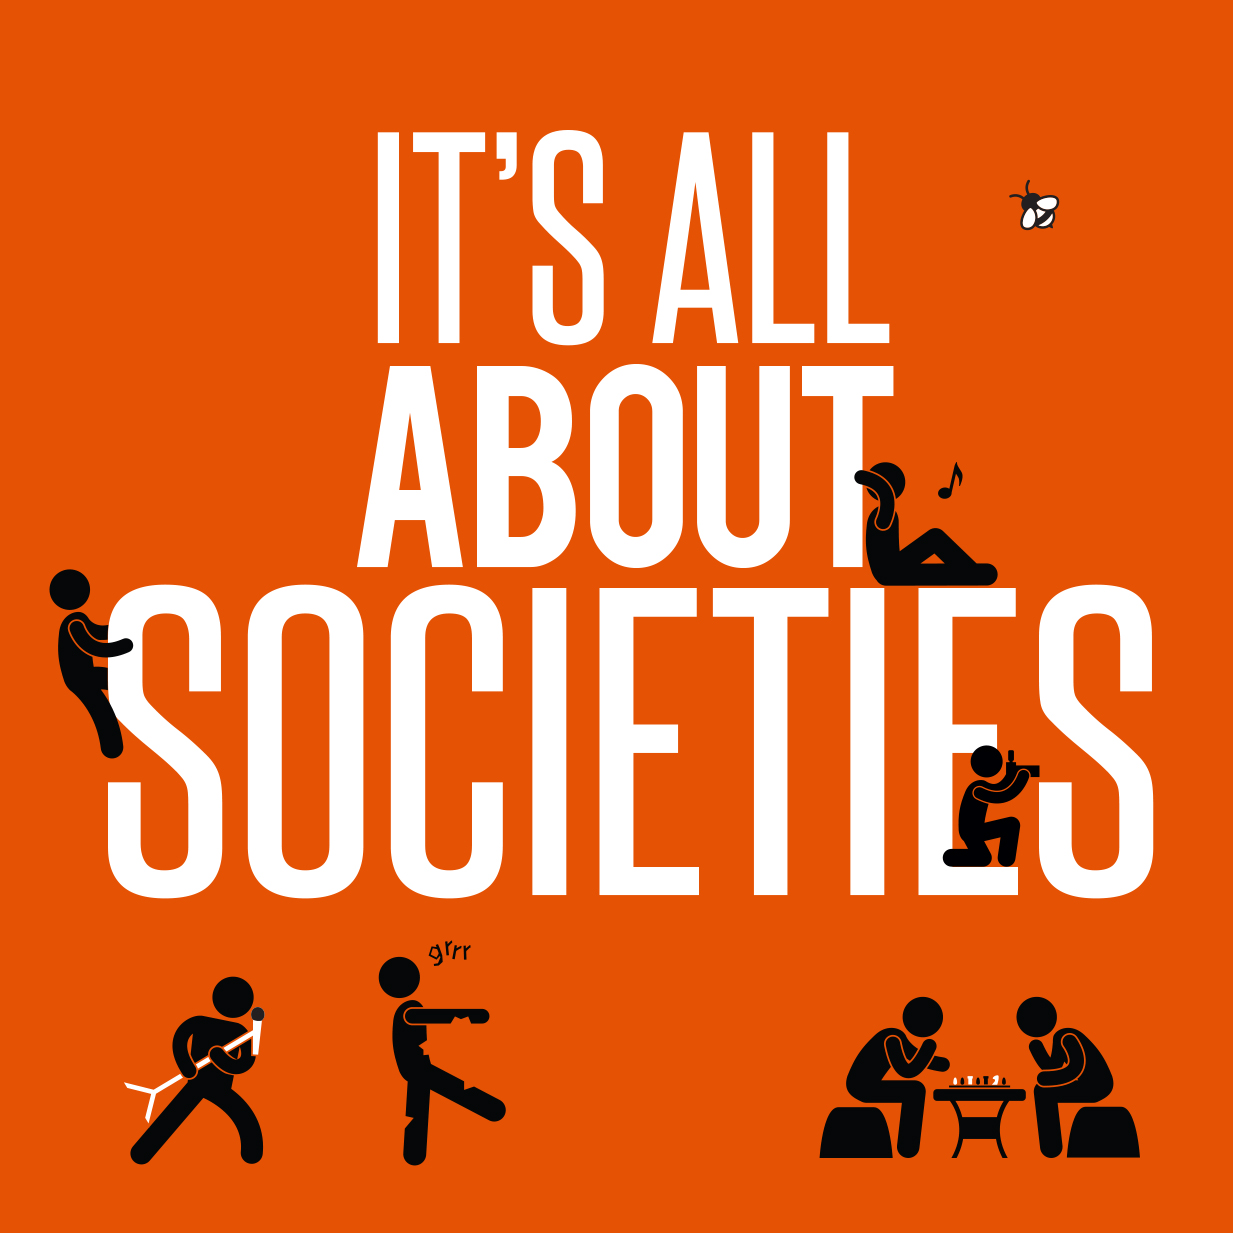 Web Button: It's all about societies